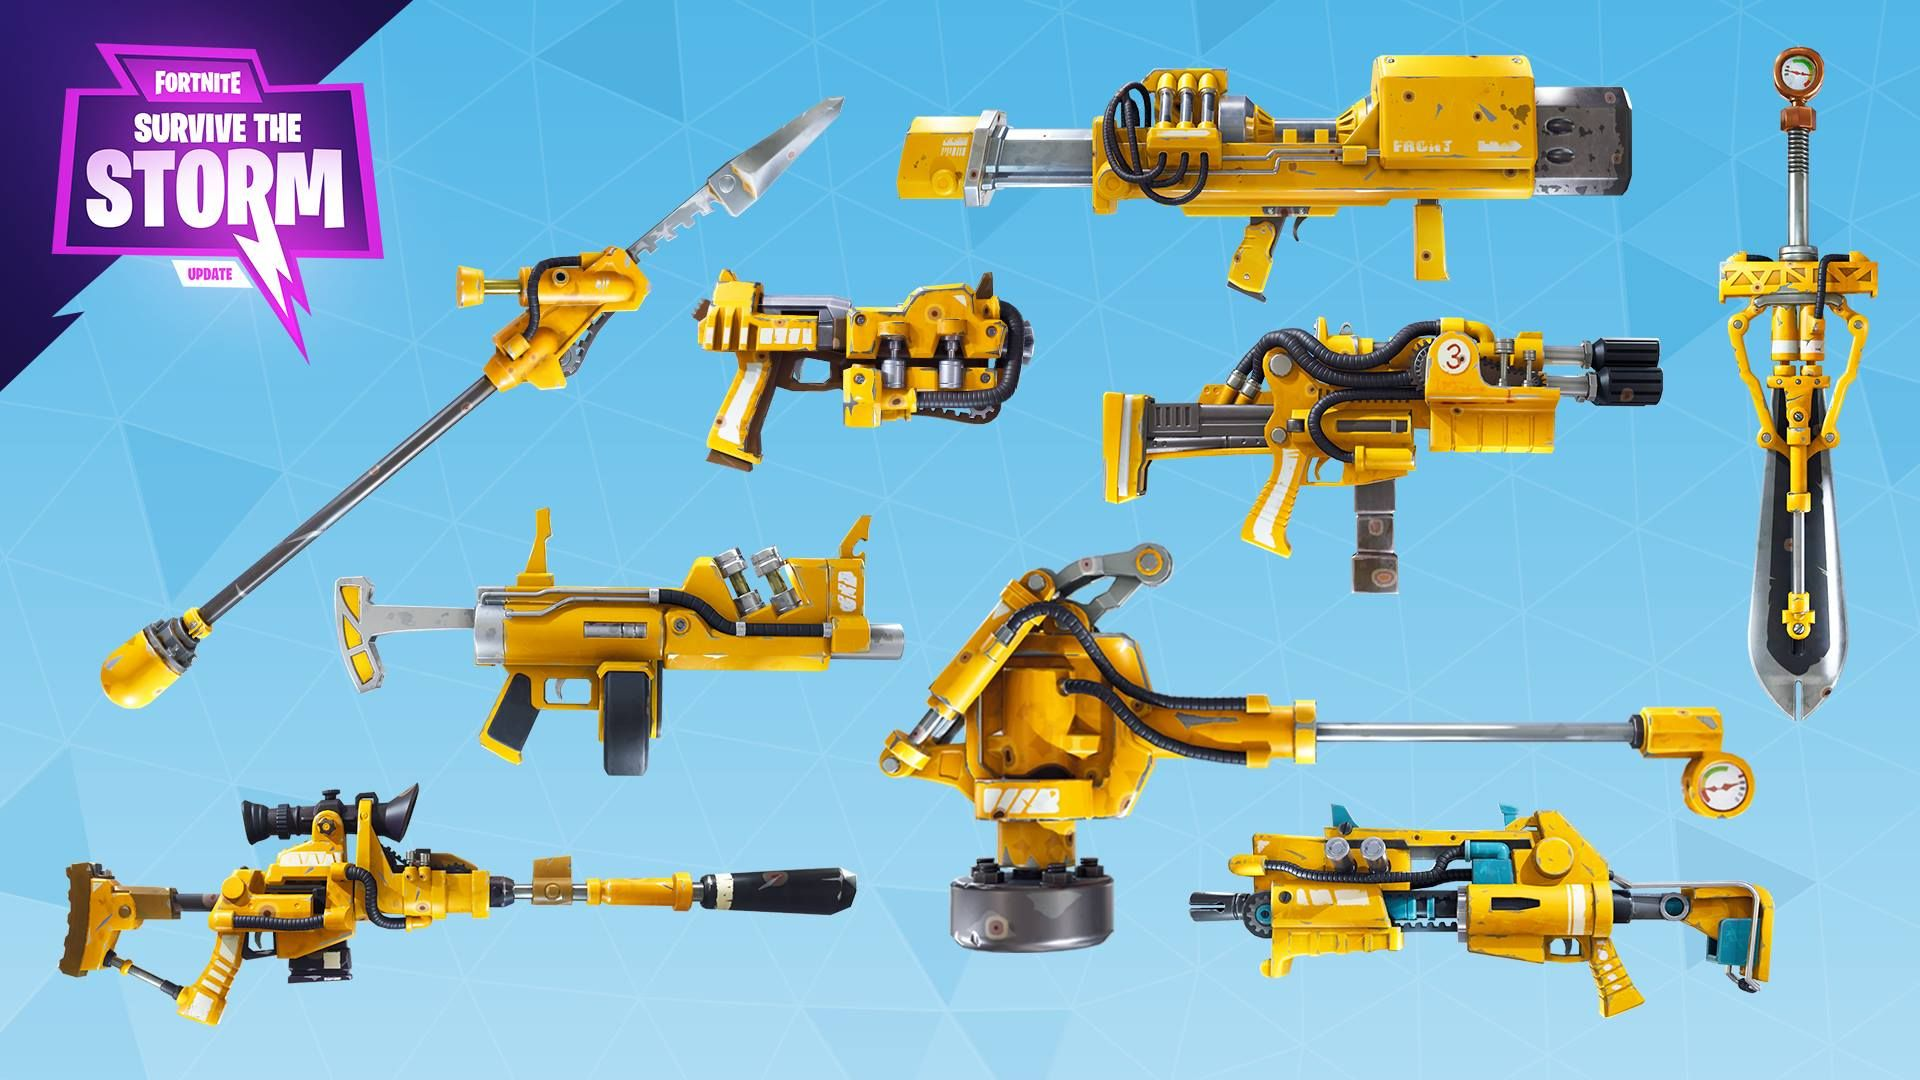 Fortnite | Weapons | Weapons, Weapons guns, Battle games